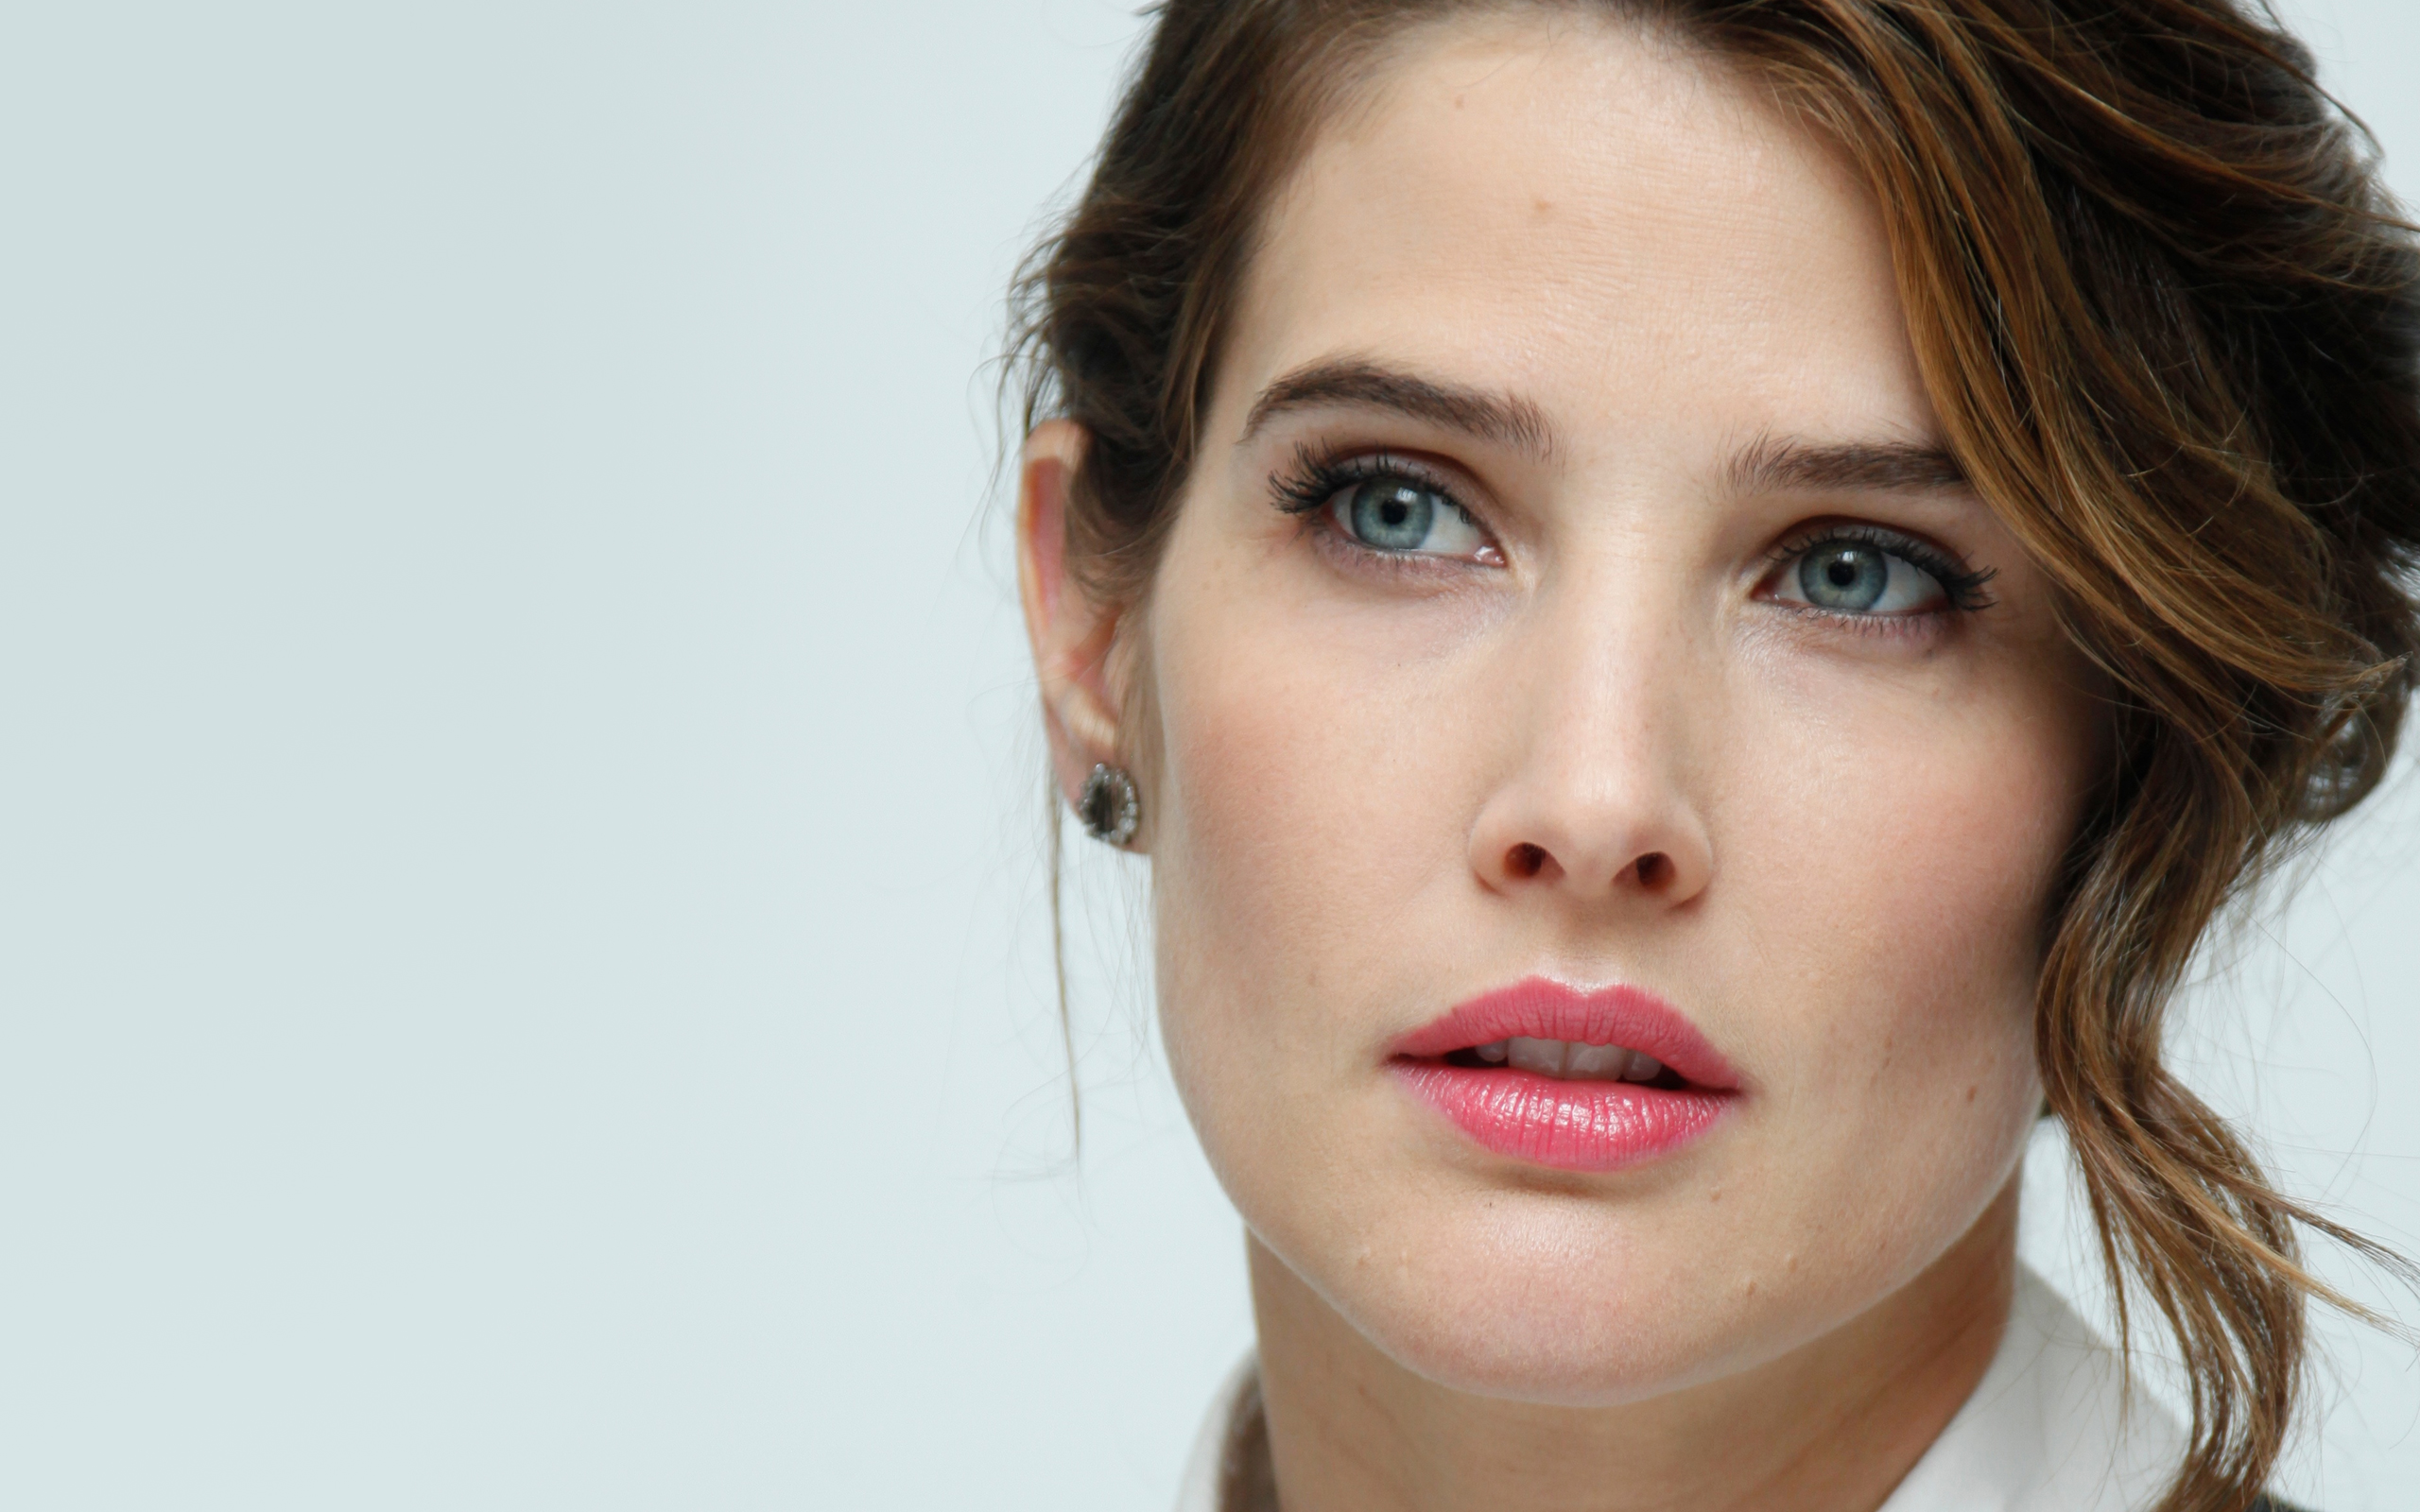 2560x1600 - Cobie Smulders Wallpapers 1